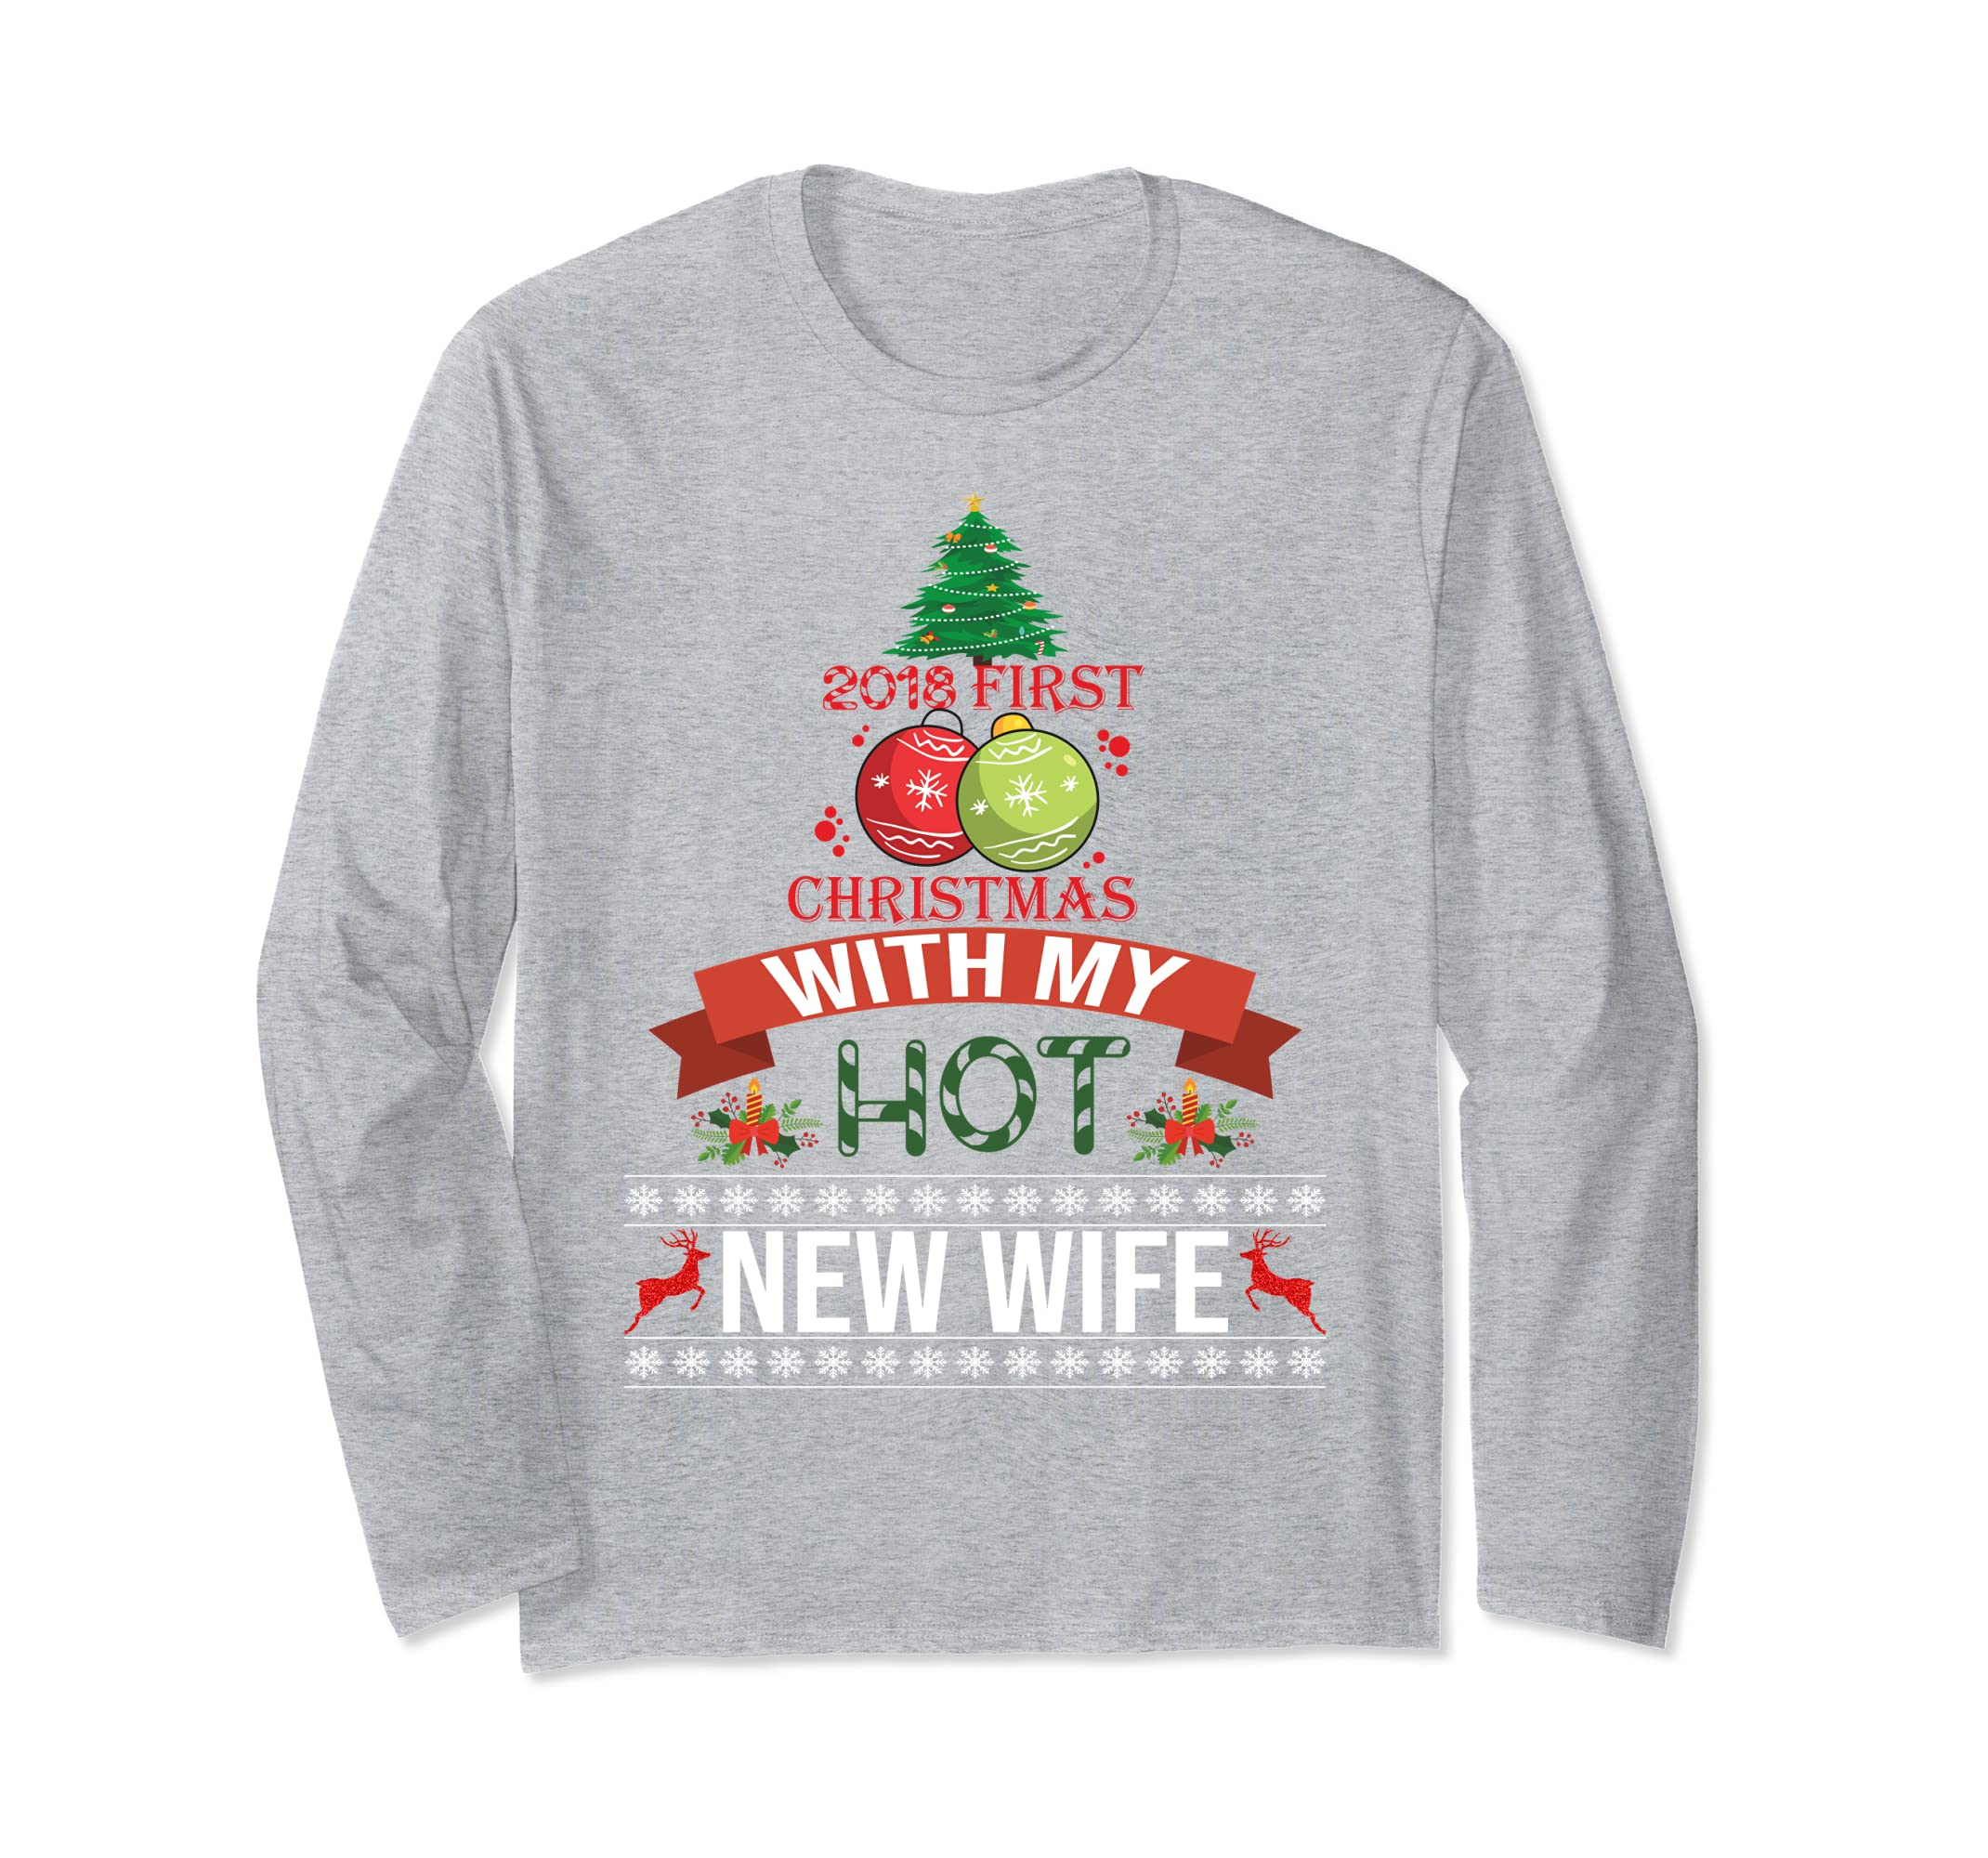 2018 First Christmas With My Hot New Wife Shirt Long Slv-azvn